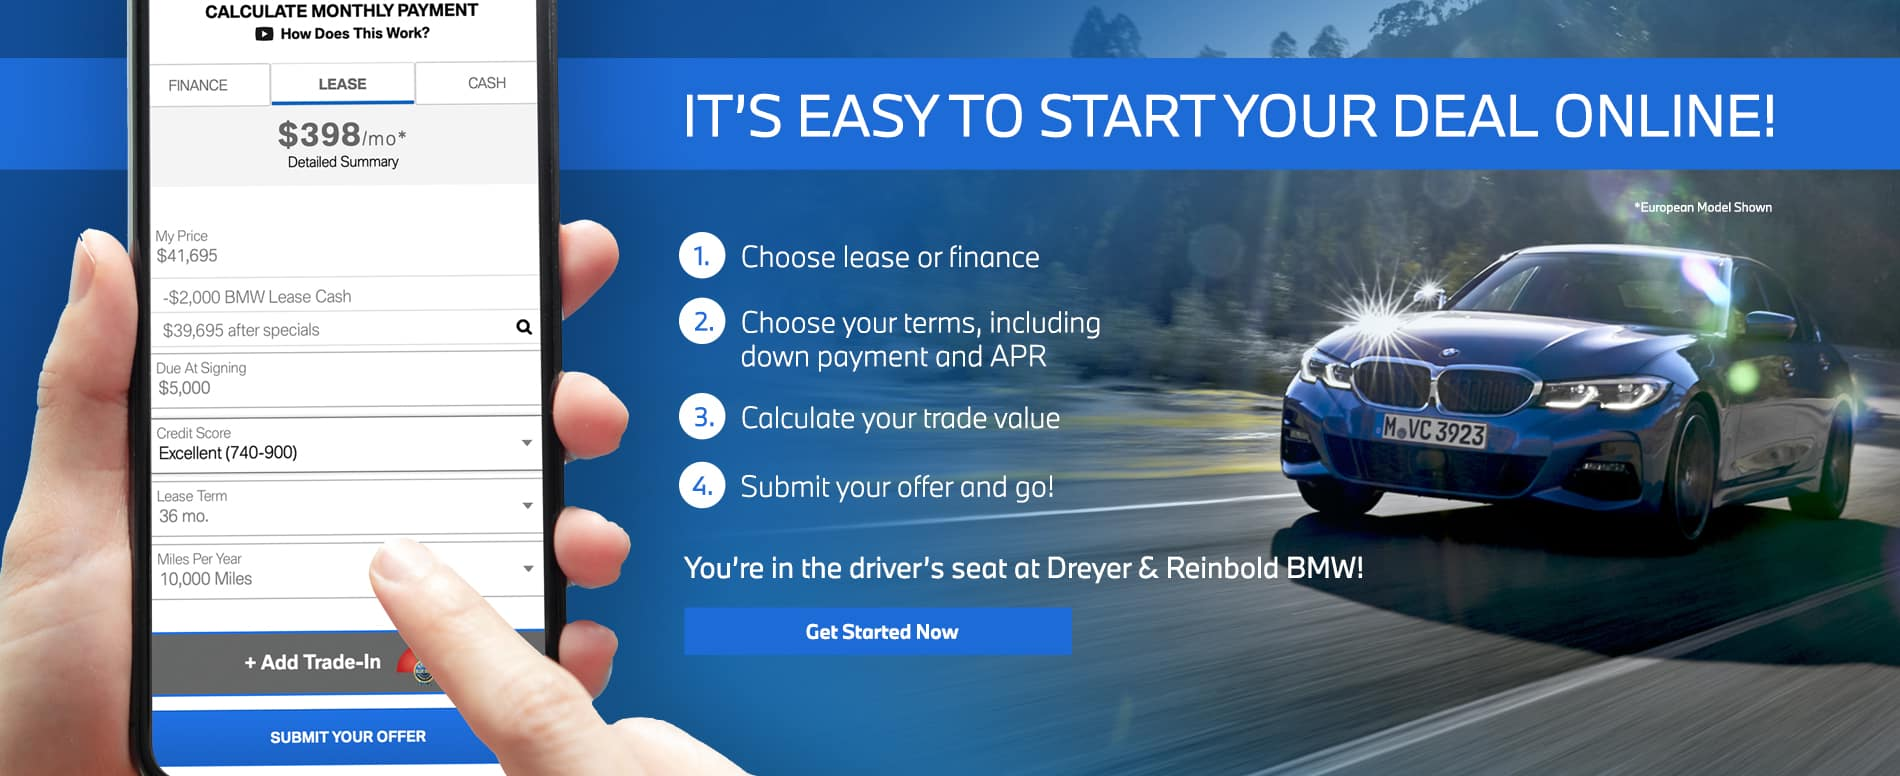 Start your deal online! Click to get started now. Image of calculating a payment on your phone in the foreground. Blue vehicle driving in the background.